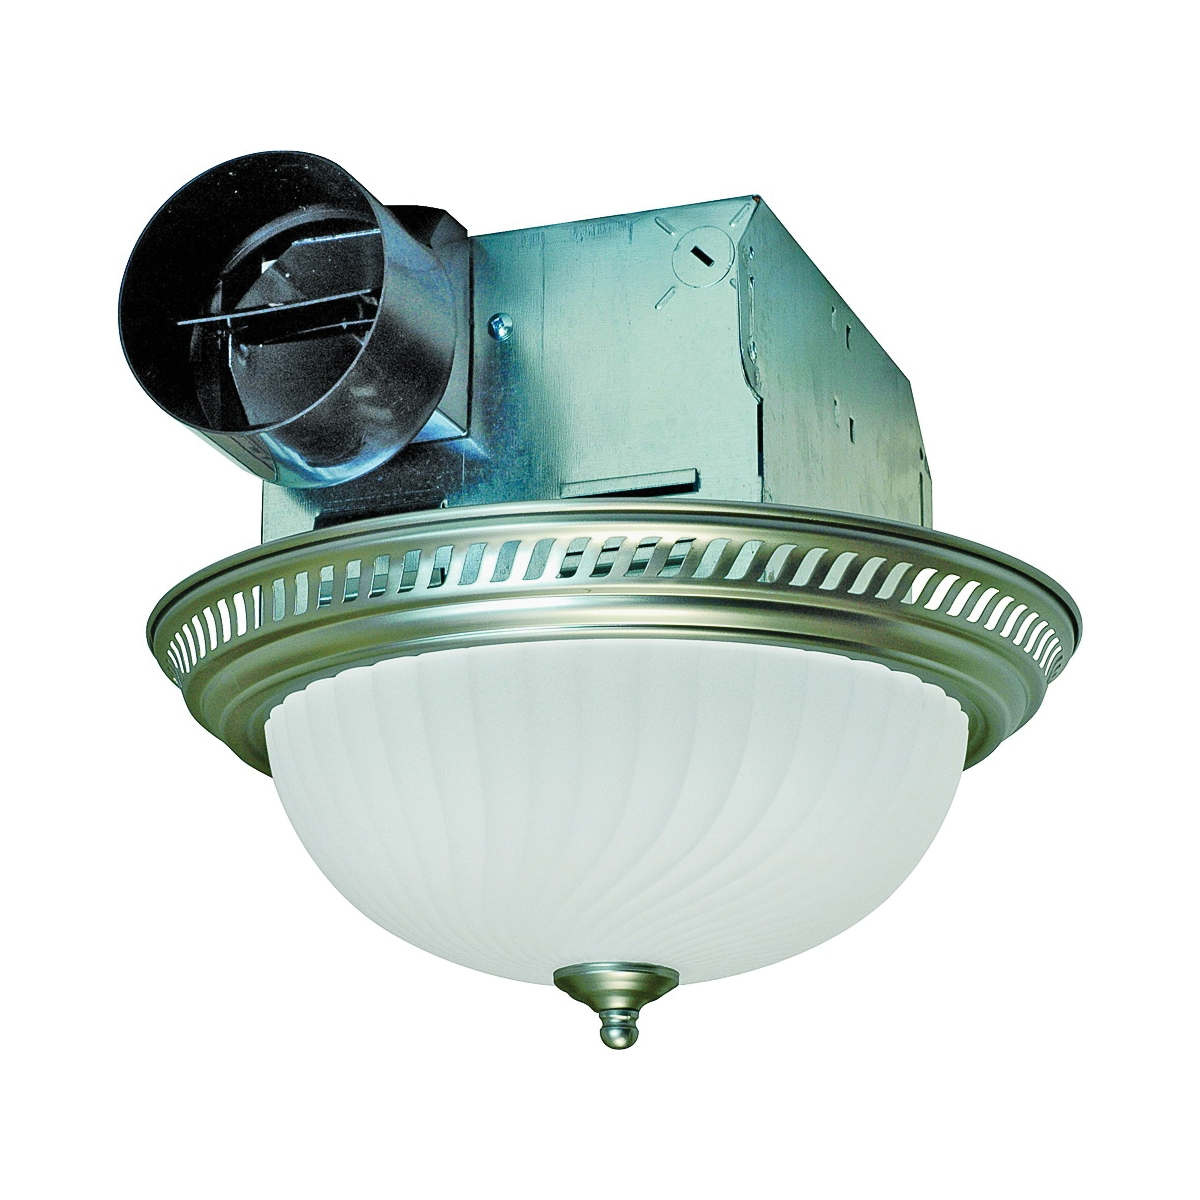 Picture of Air King DRLC702 Exhaust Fan, 1.6 A, 120 V, 70 cfm Air, 4 Sones, Fluorescent Lamp, 4 in Duct